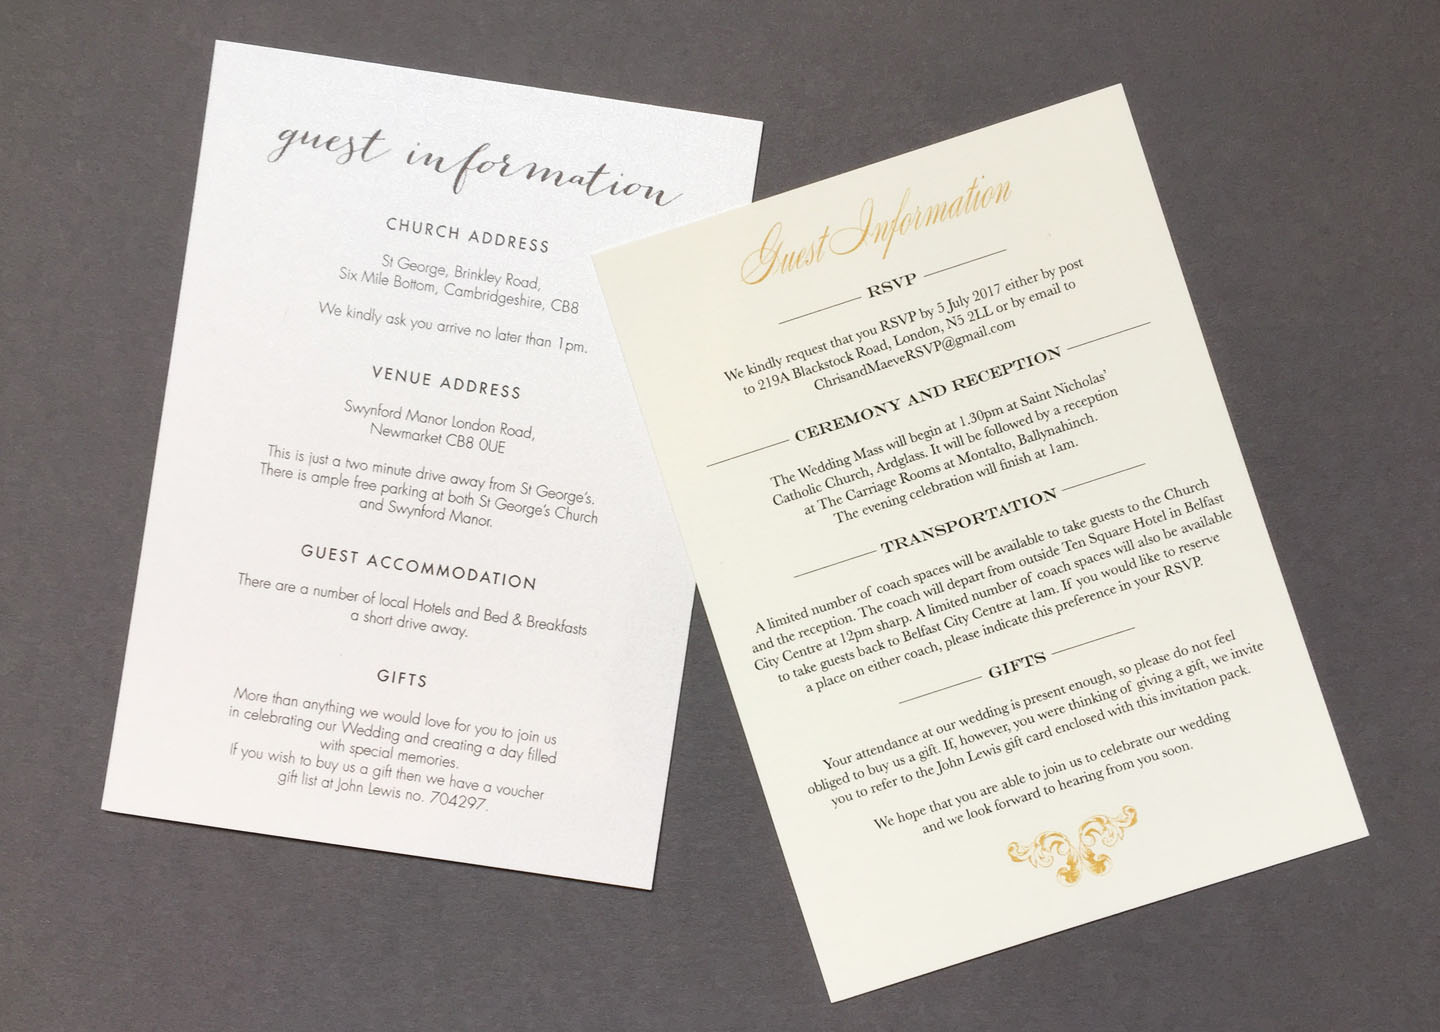 Wedding Stationery Planning: Where to Start with Wedding ...